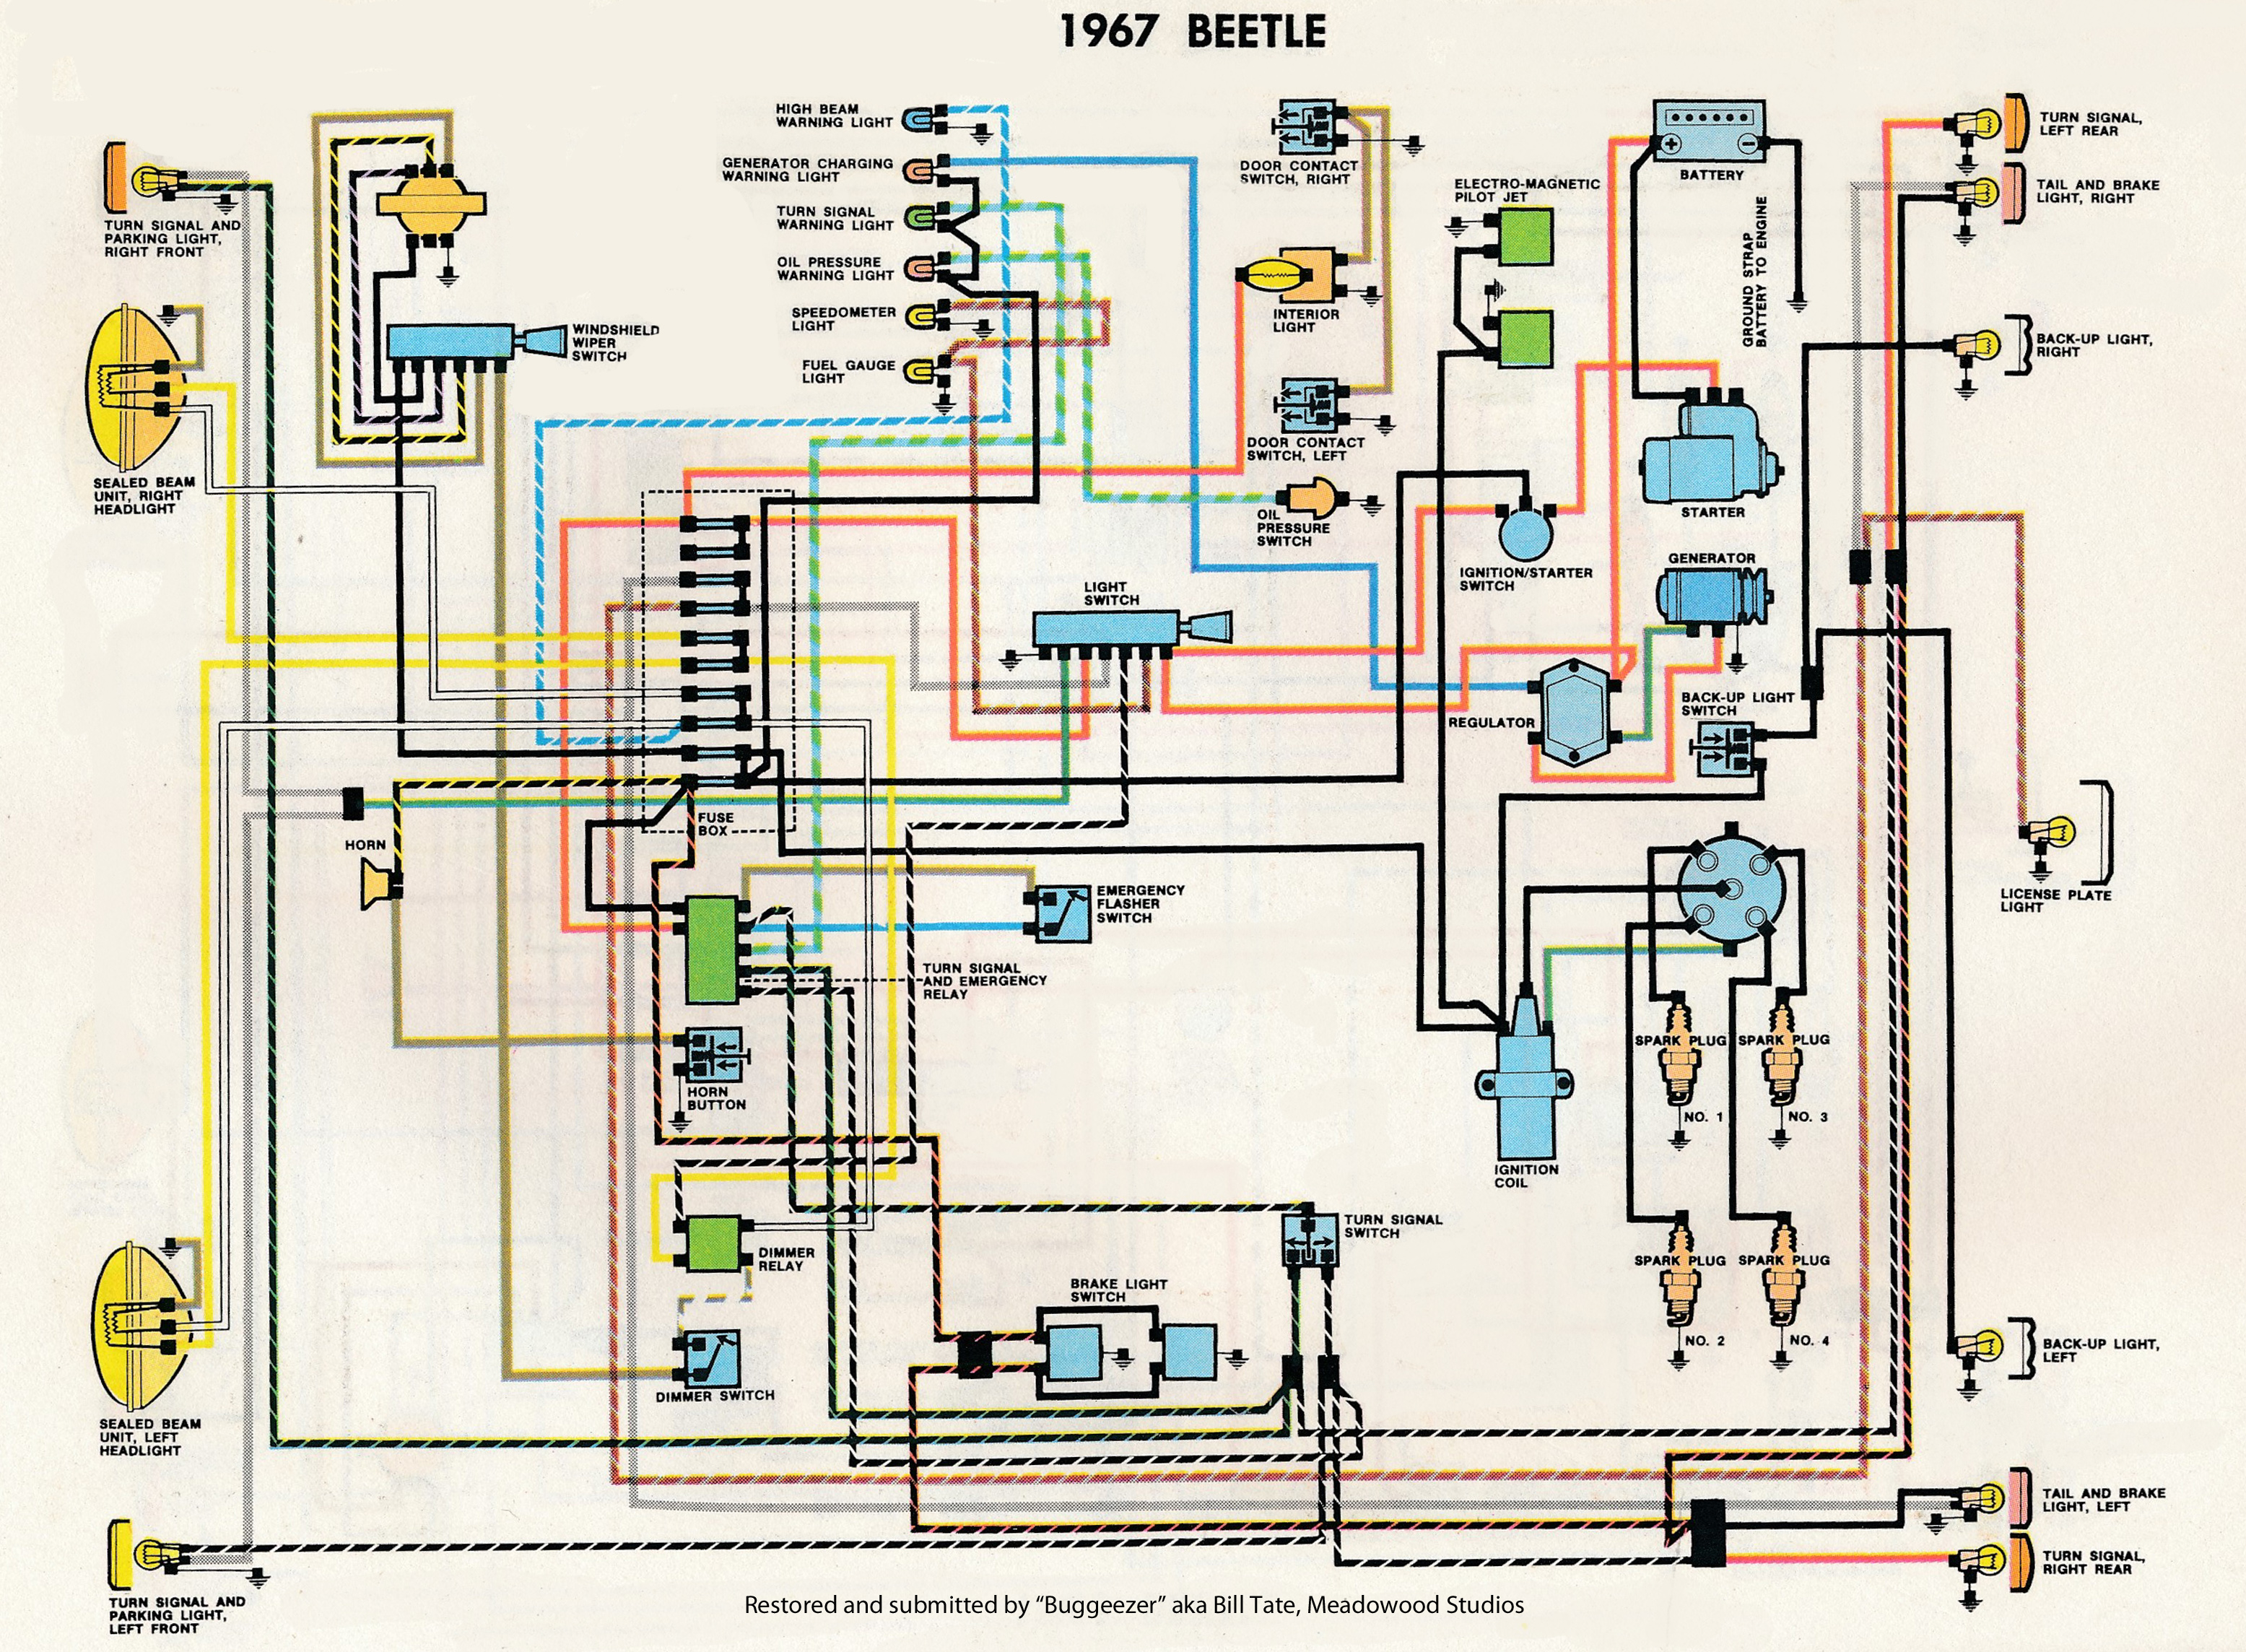 Beetle_1967_Clymers thesamba com type 1 wiring diagrams vw engine wiring diagram at gsmx.co